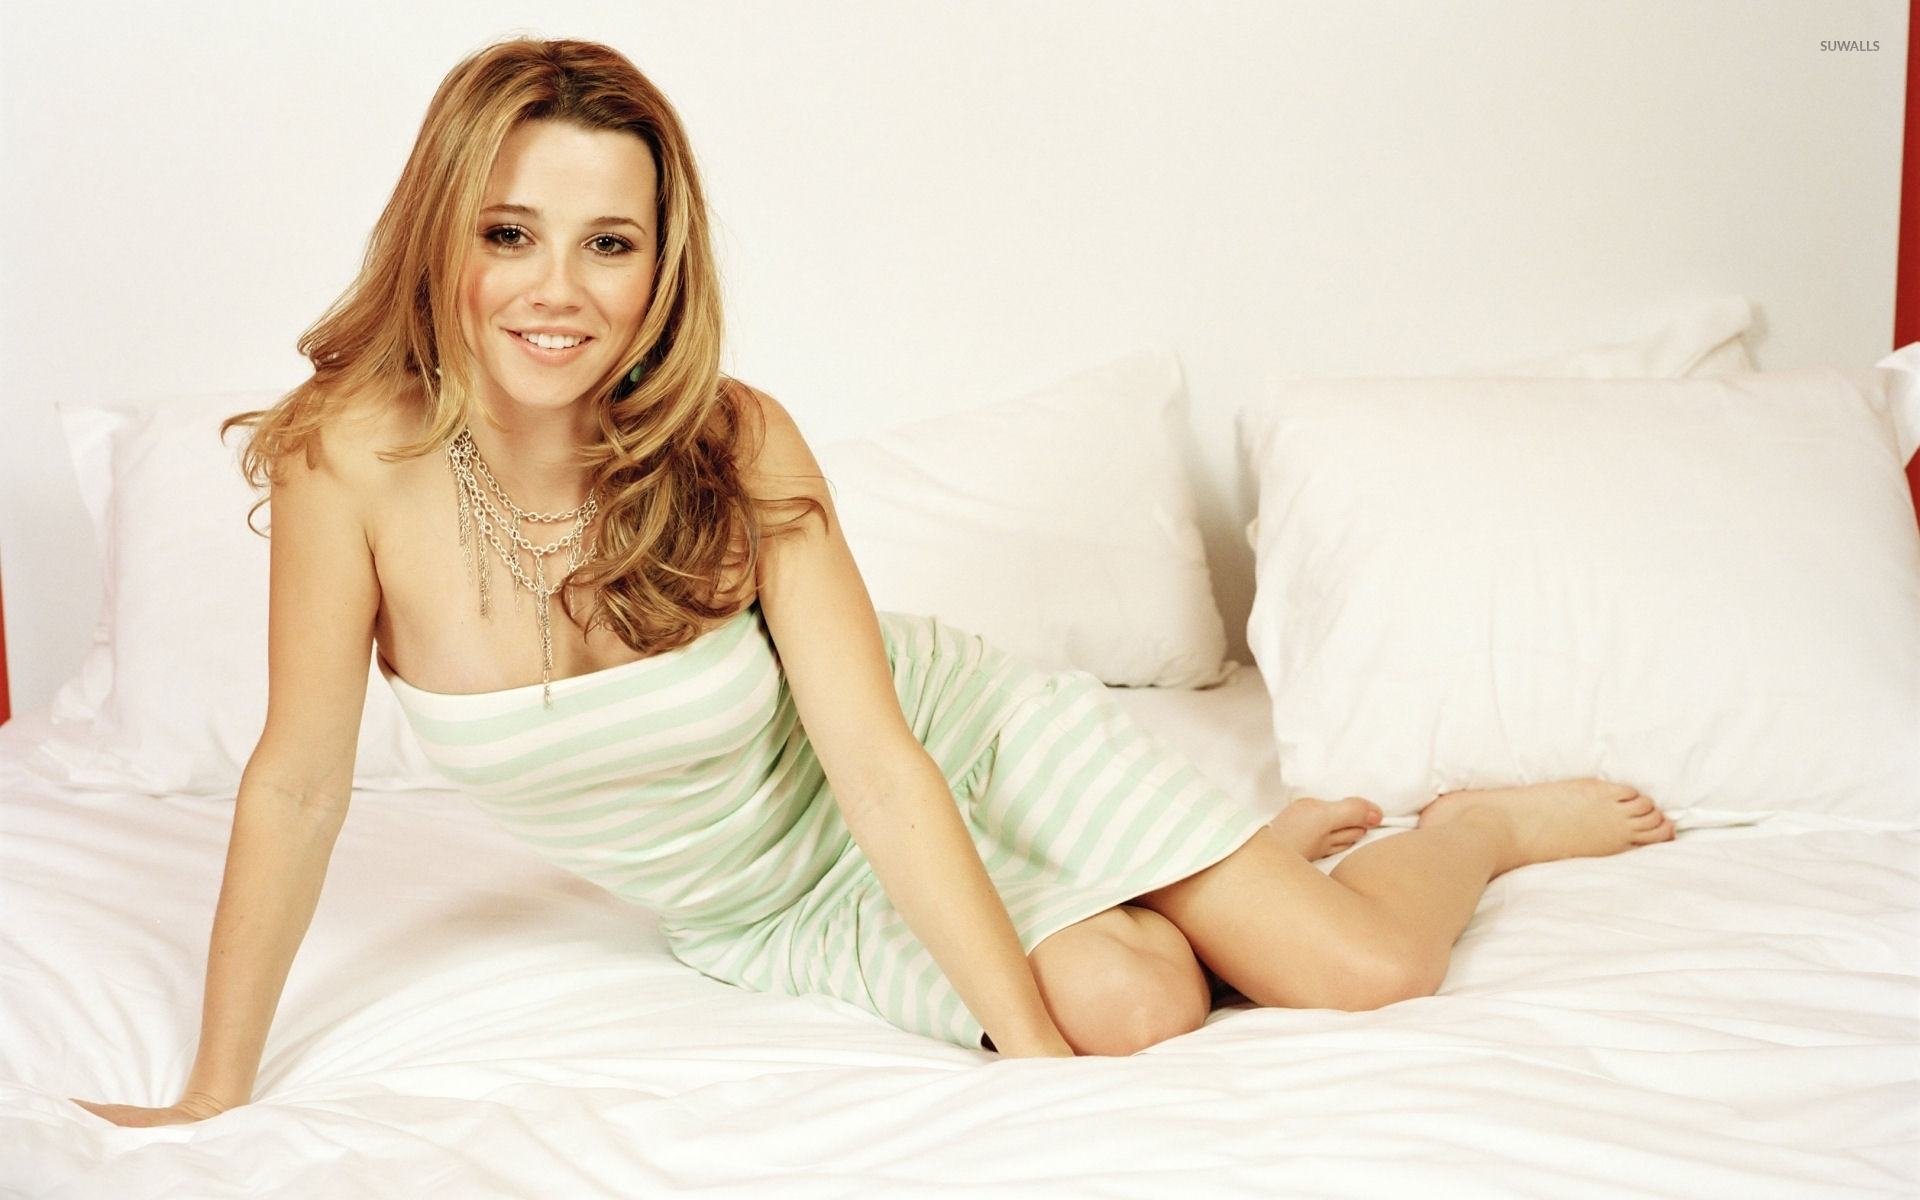 Linda Cardellini [4] wallpaper - Celebrity wallpapers - #42940